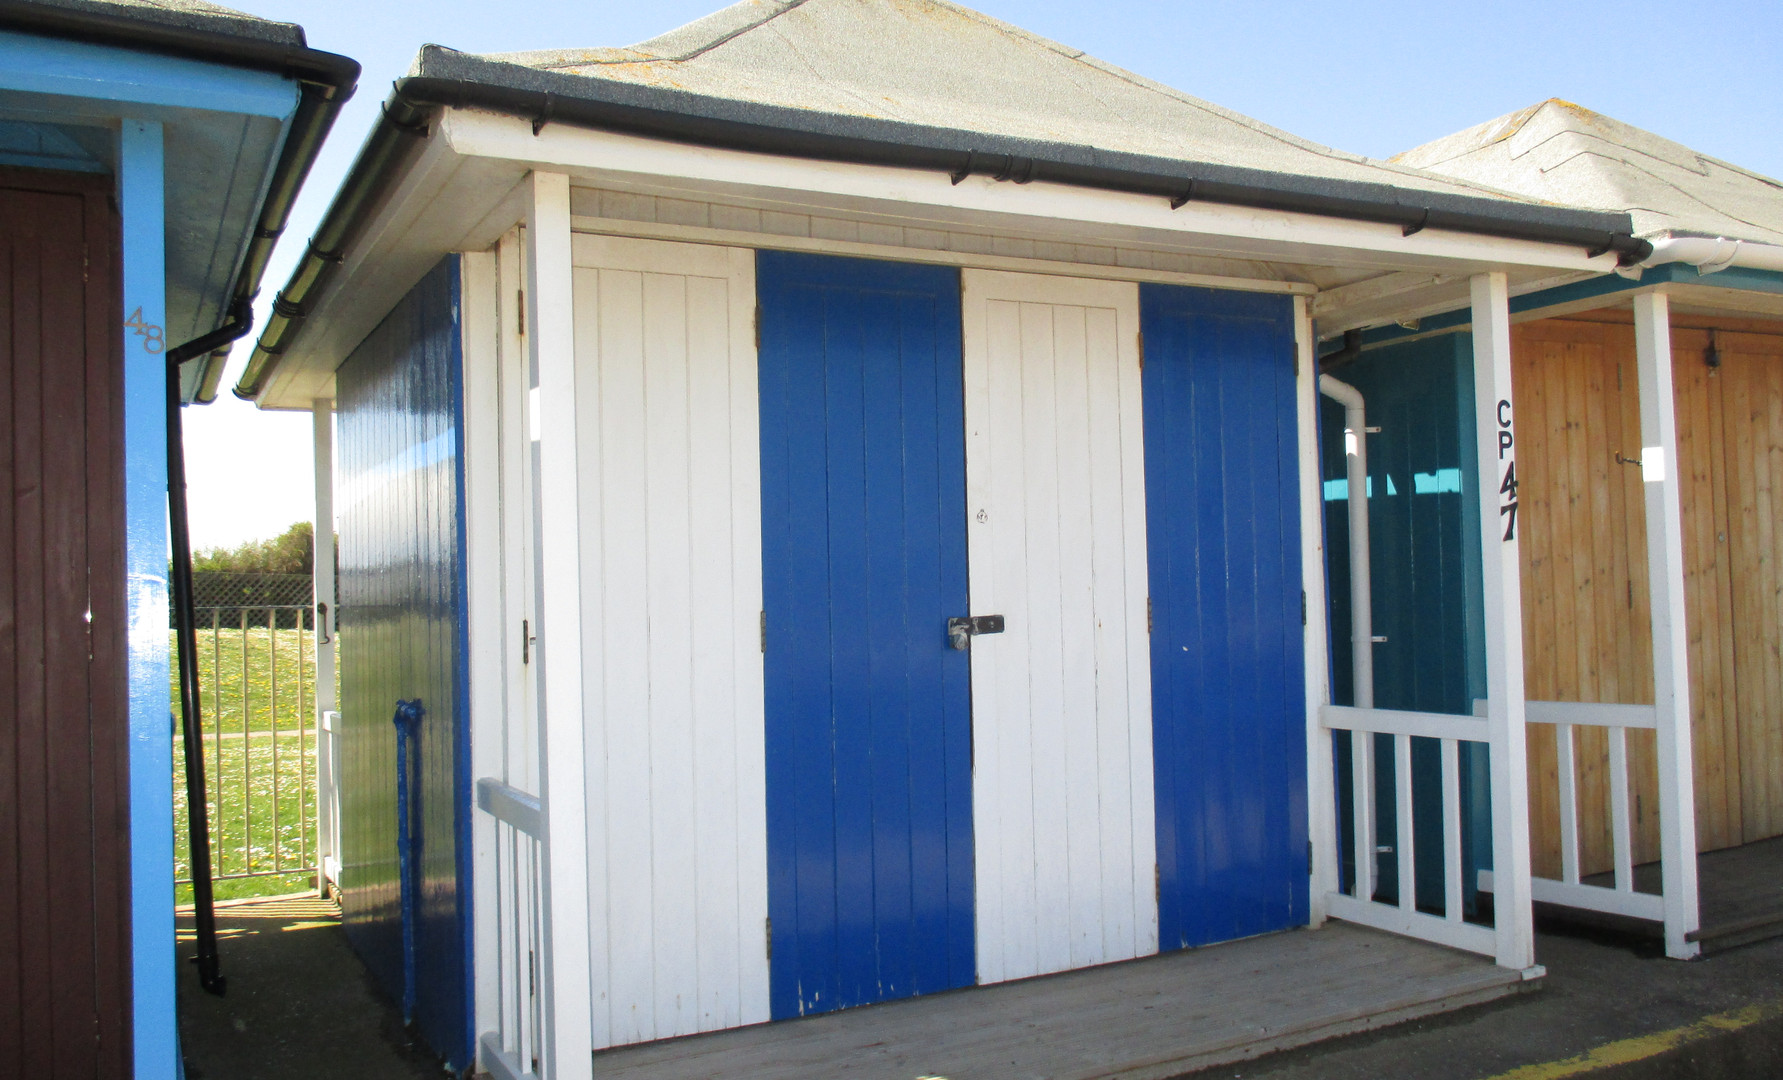 Our beach hut which is available to rent